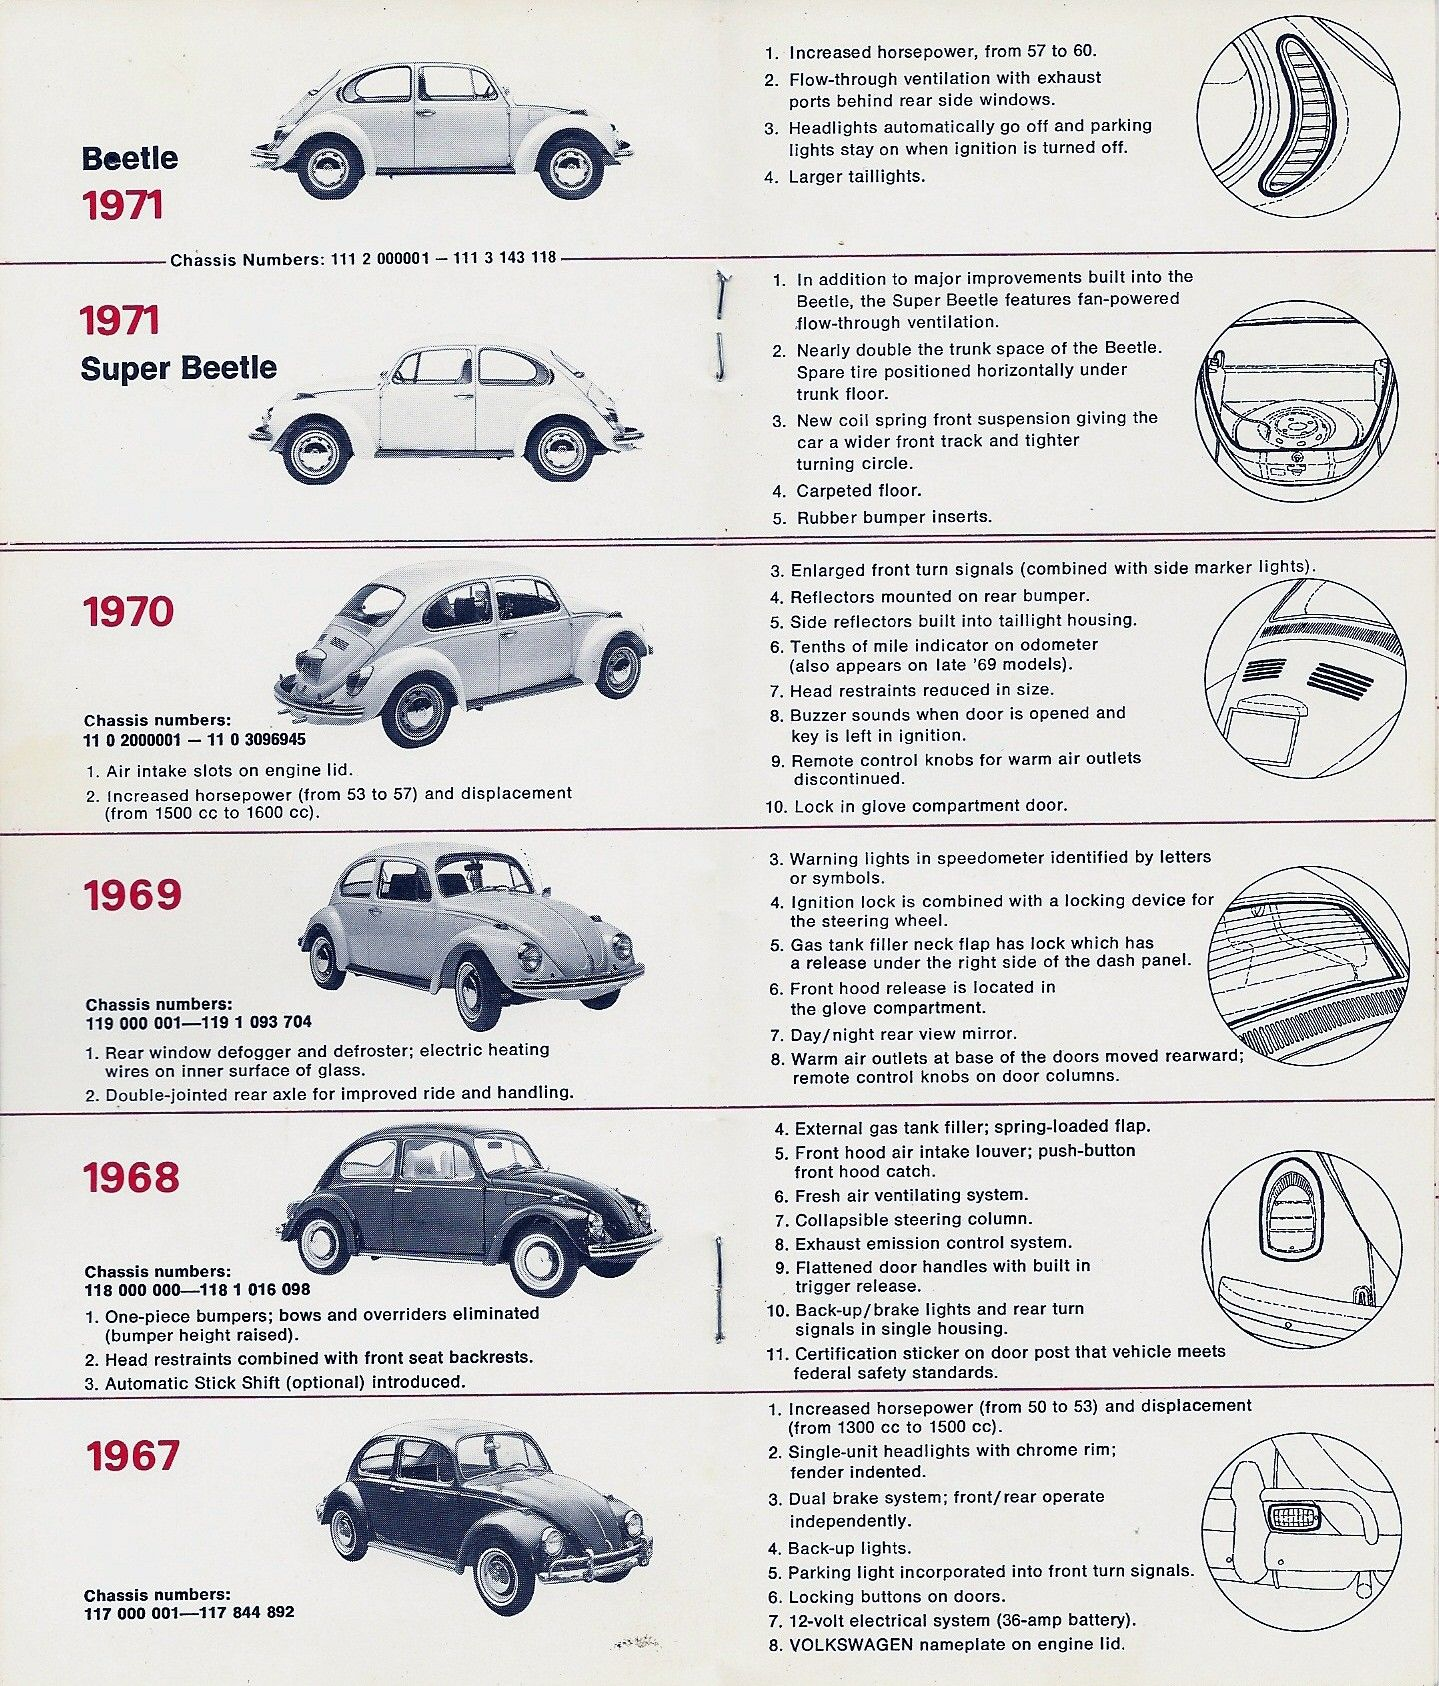 August 2015 Volkswagen Beetle Vintage Vw Beetle Classic Vw Beetles